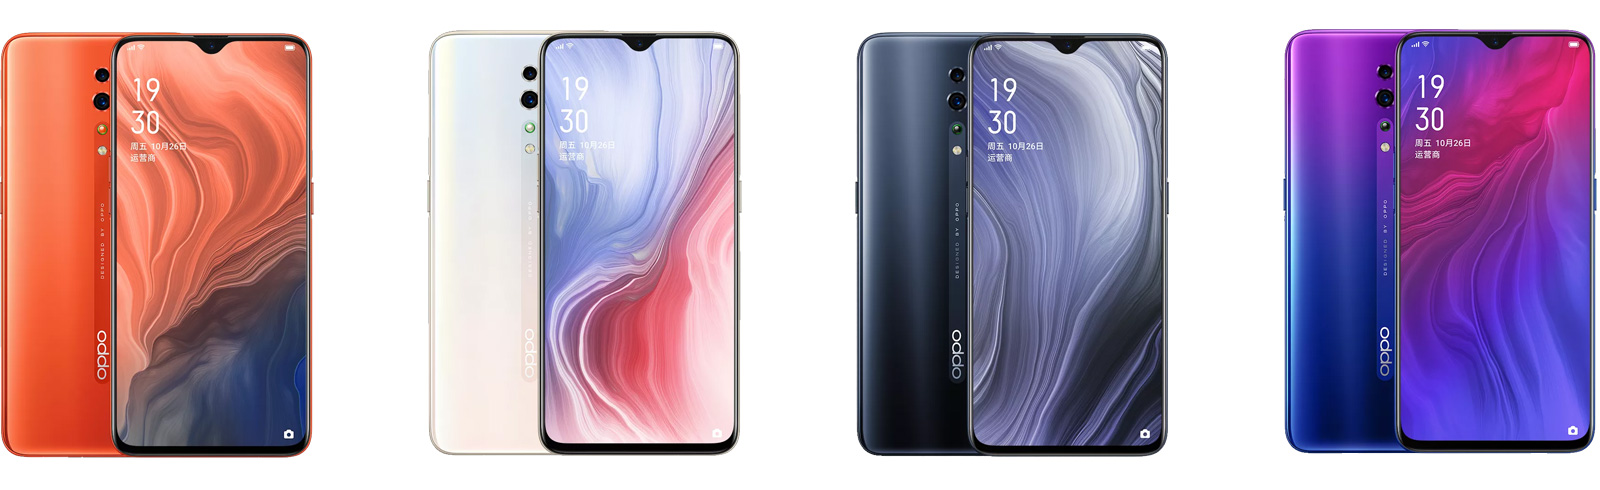 Oppo Reno Z with Helio P90 goes official in China